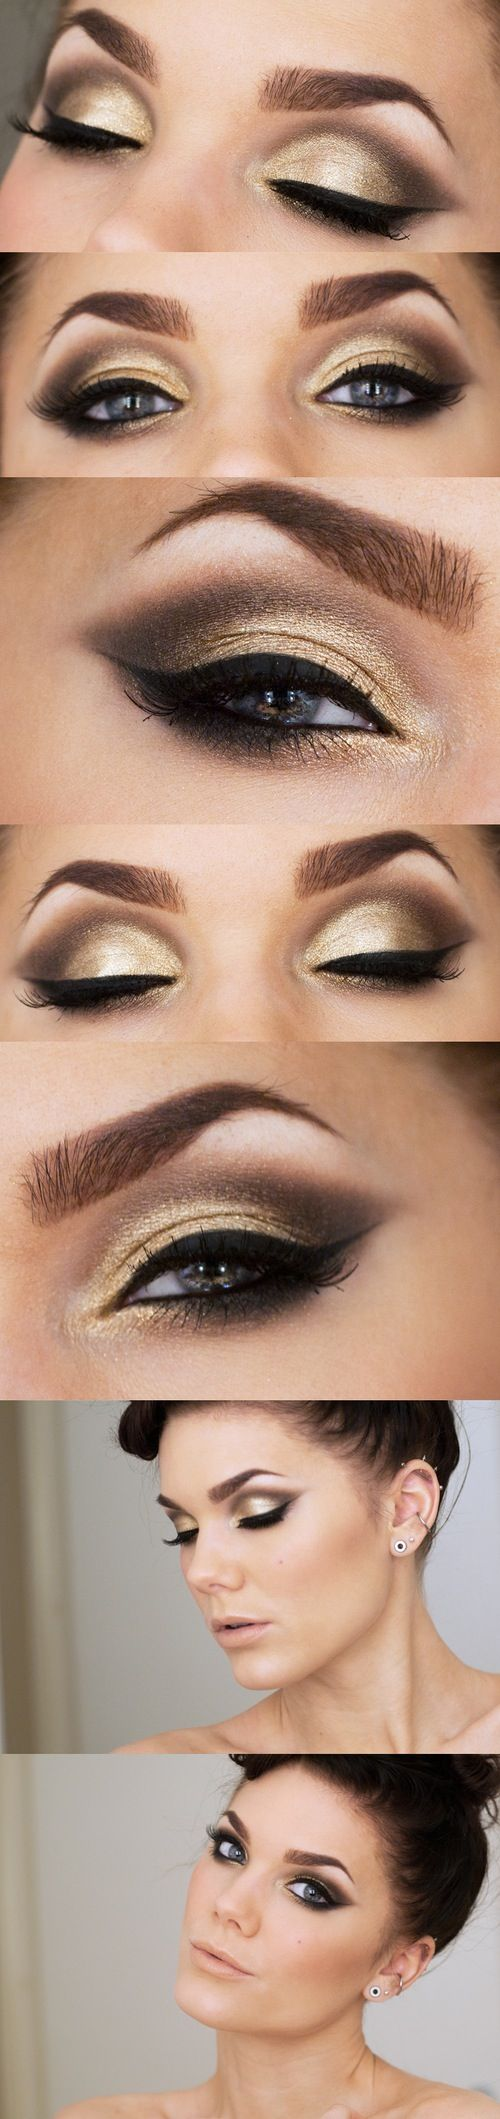 Smokey eye for bride, bridal eye makeup look